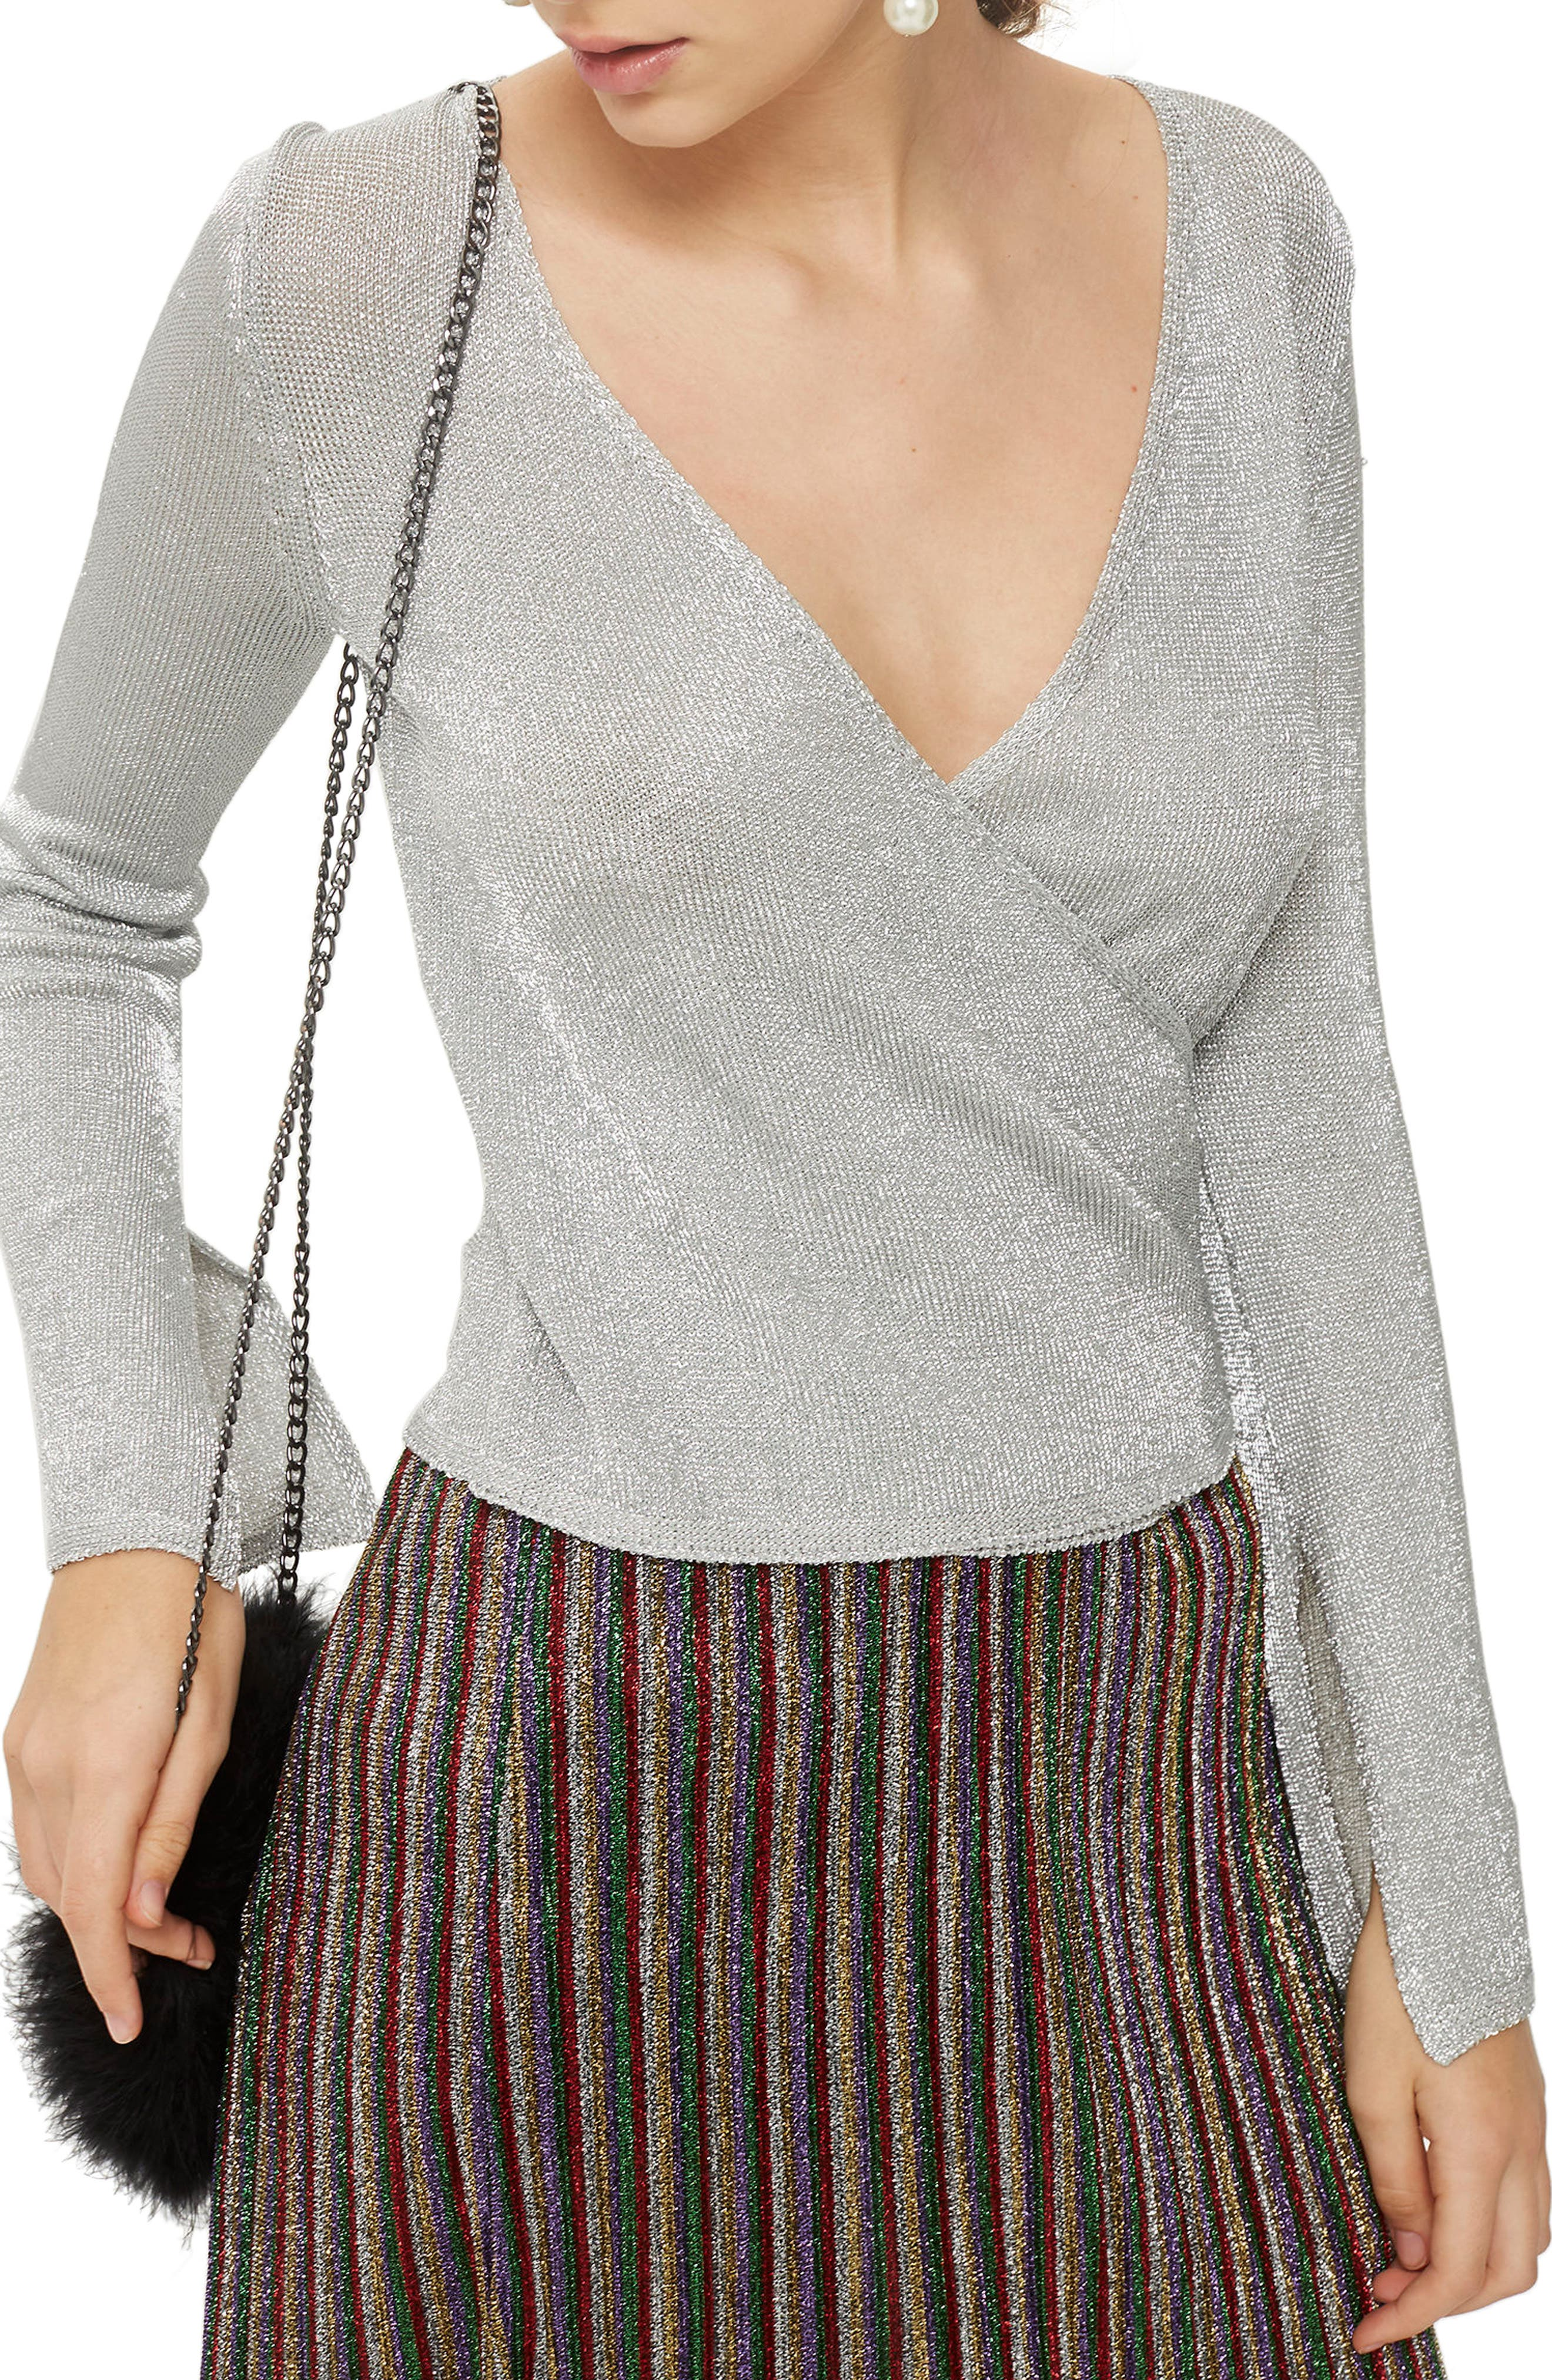 Metal Yarn Wrap Knit Top,                         Main,                         color, Silver